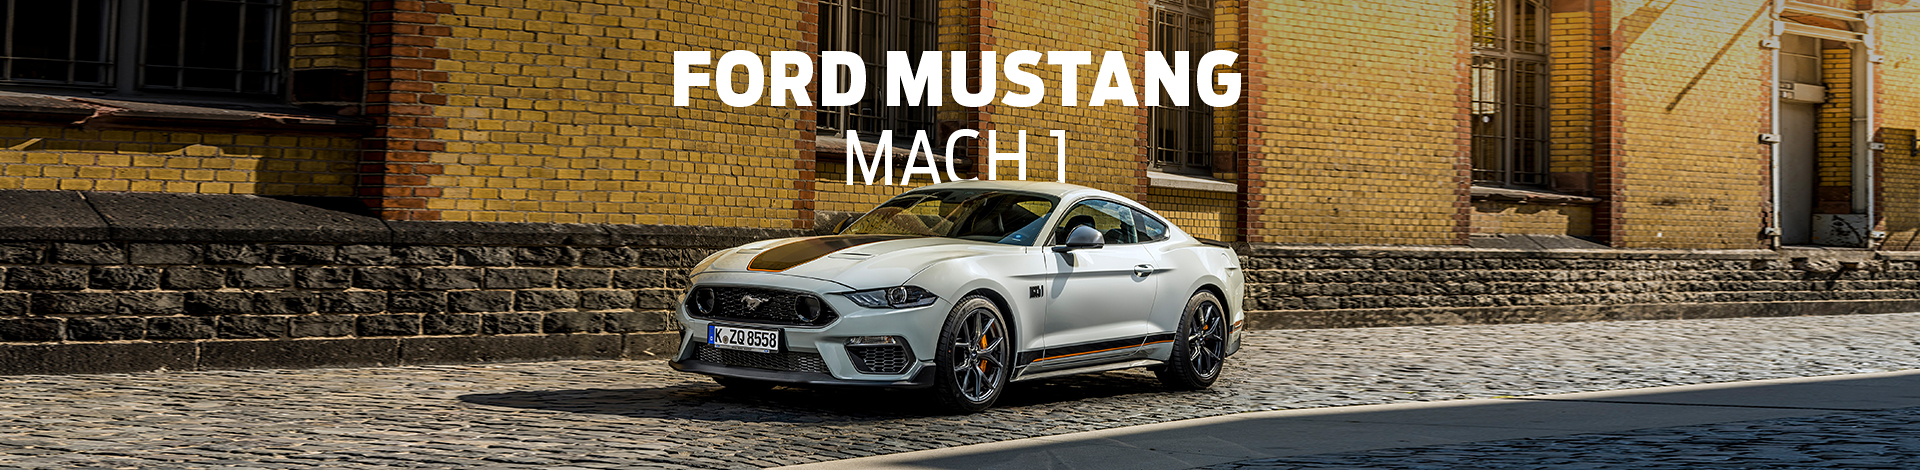 Ford Mustang Mach 1 Banner (Mach 1 Page & Mustang Page)